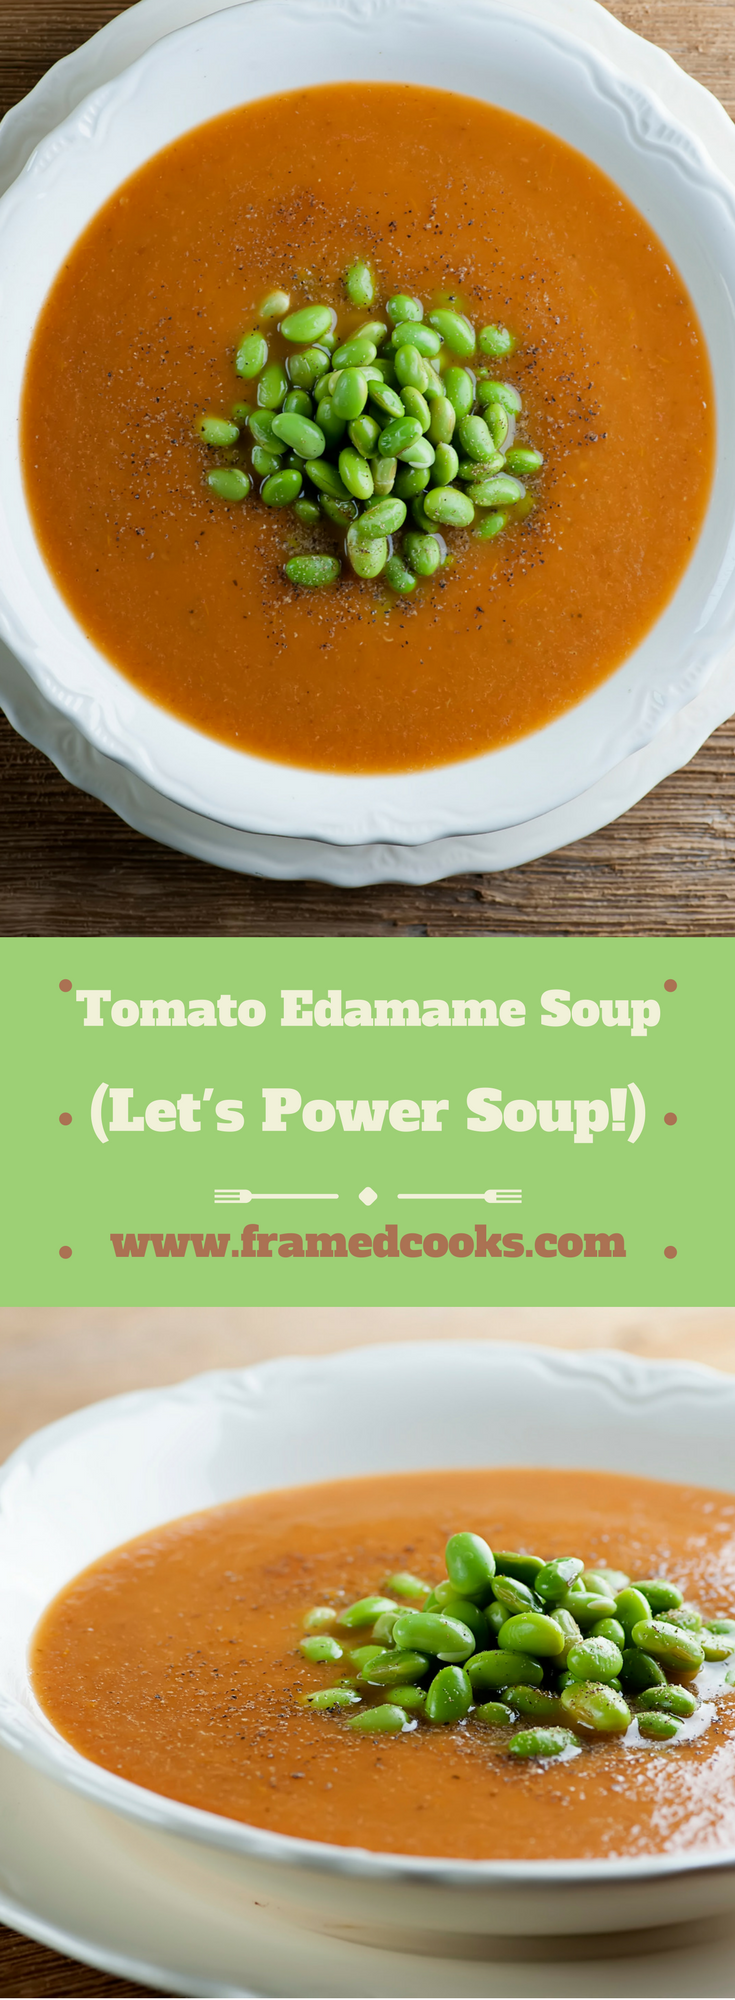 This recipe for roasted tomato and edamame soup is not only delicious, it will help you start power souping!